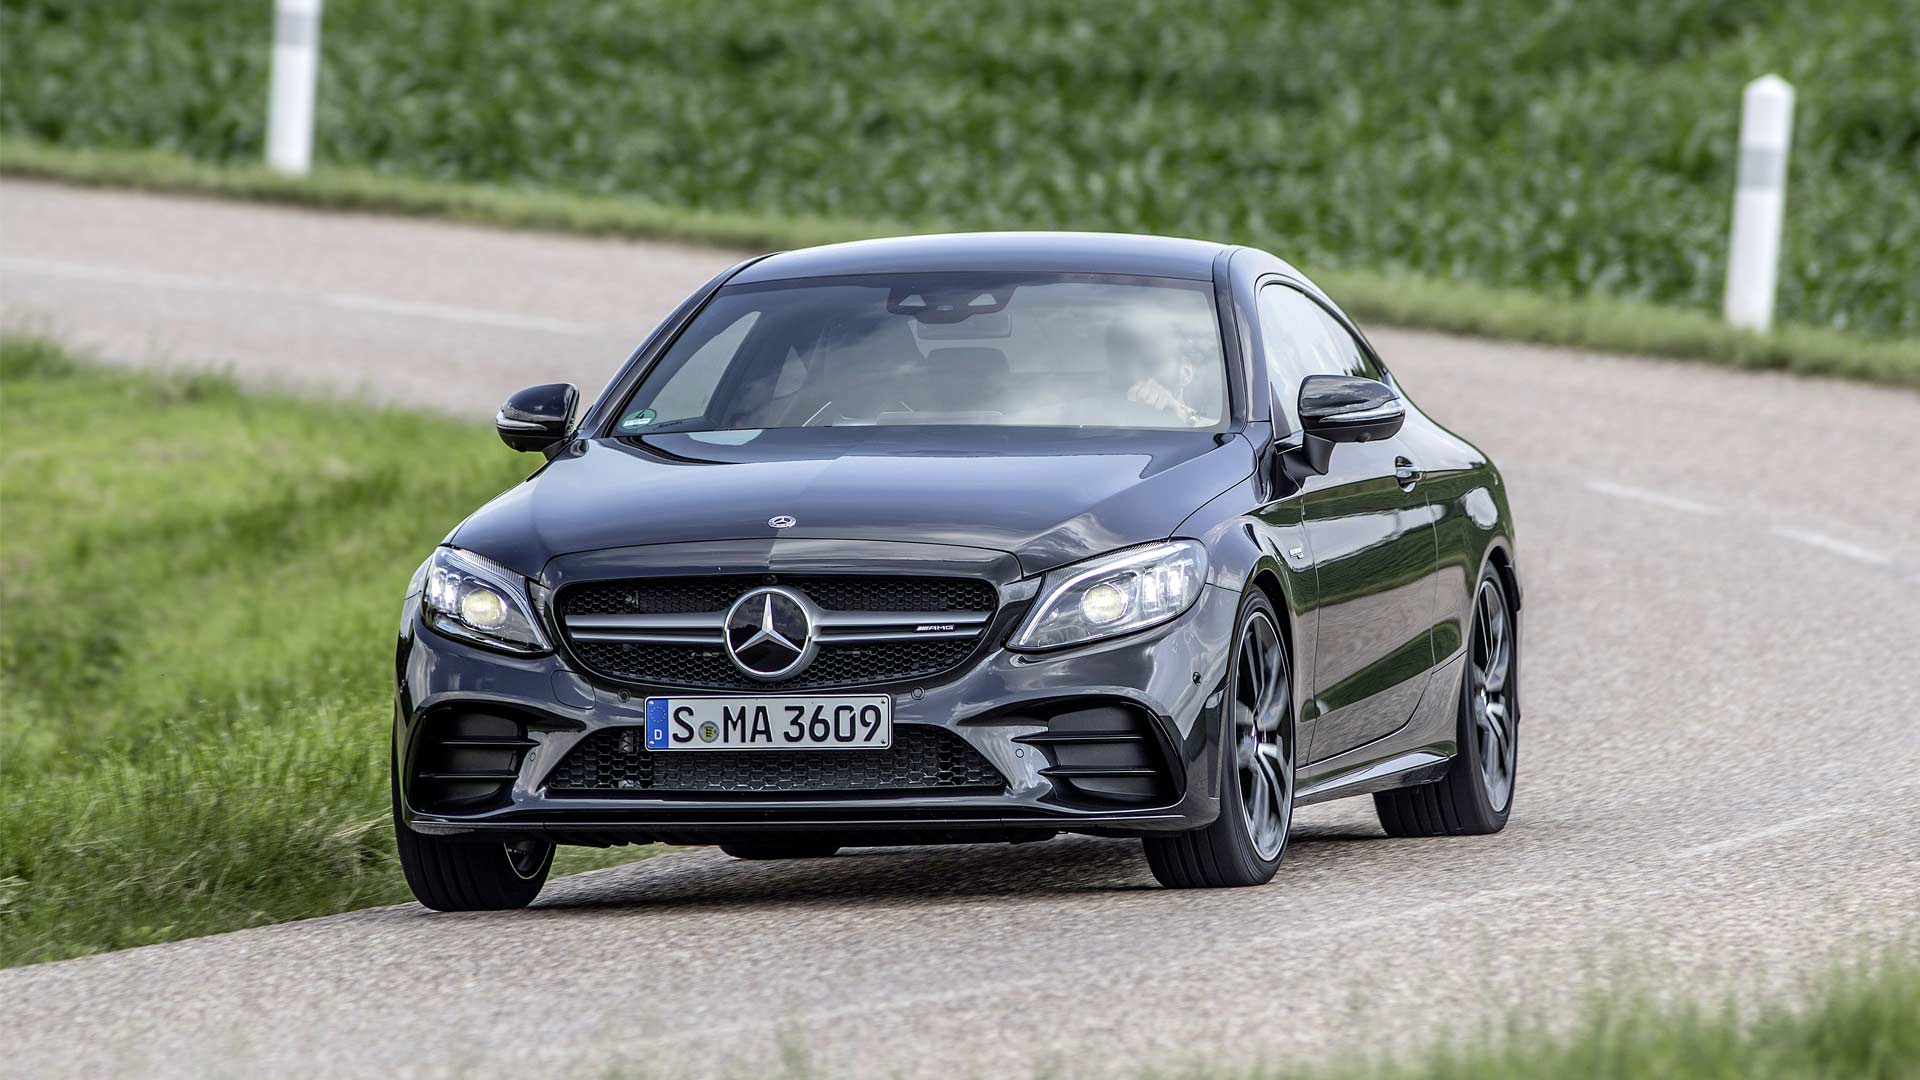 New Mercedes-AMG-C-43-4MATIC-Coupé